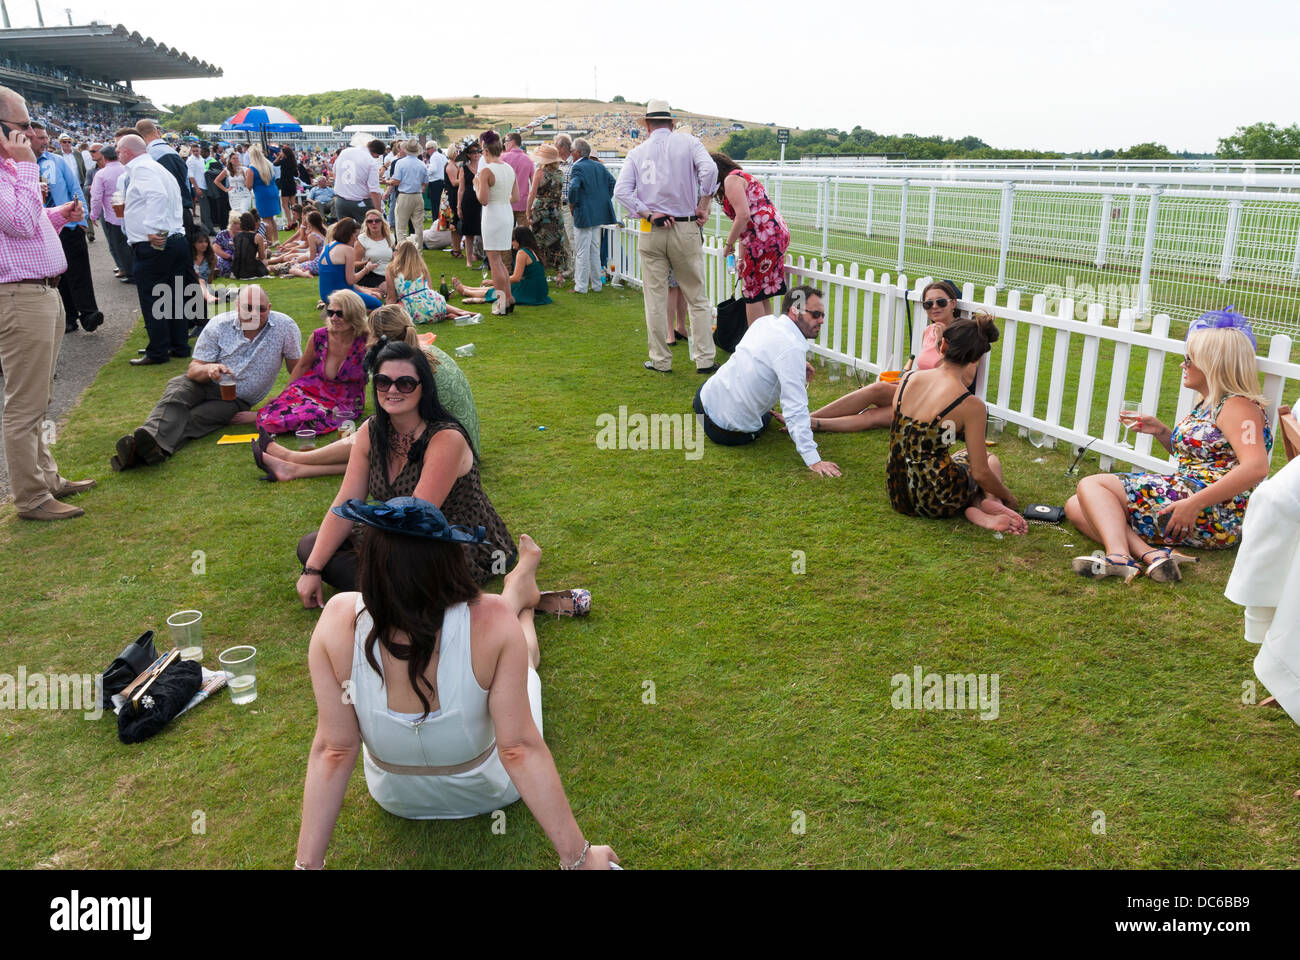 Ladies resting their feet by the rails on a horse race track - Stock Image